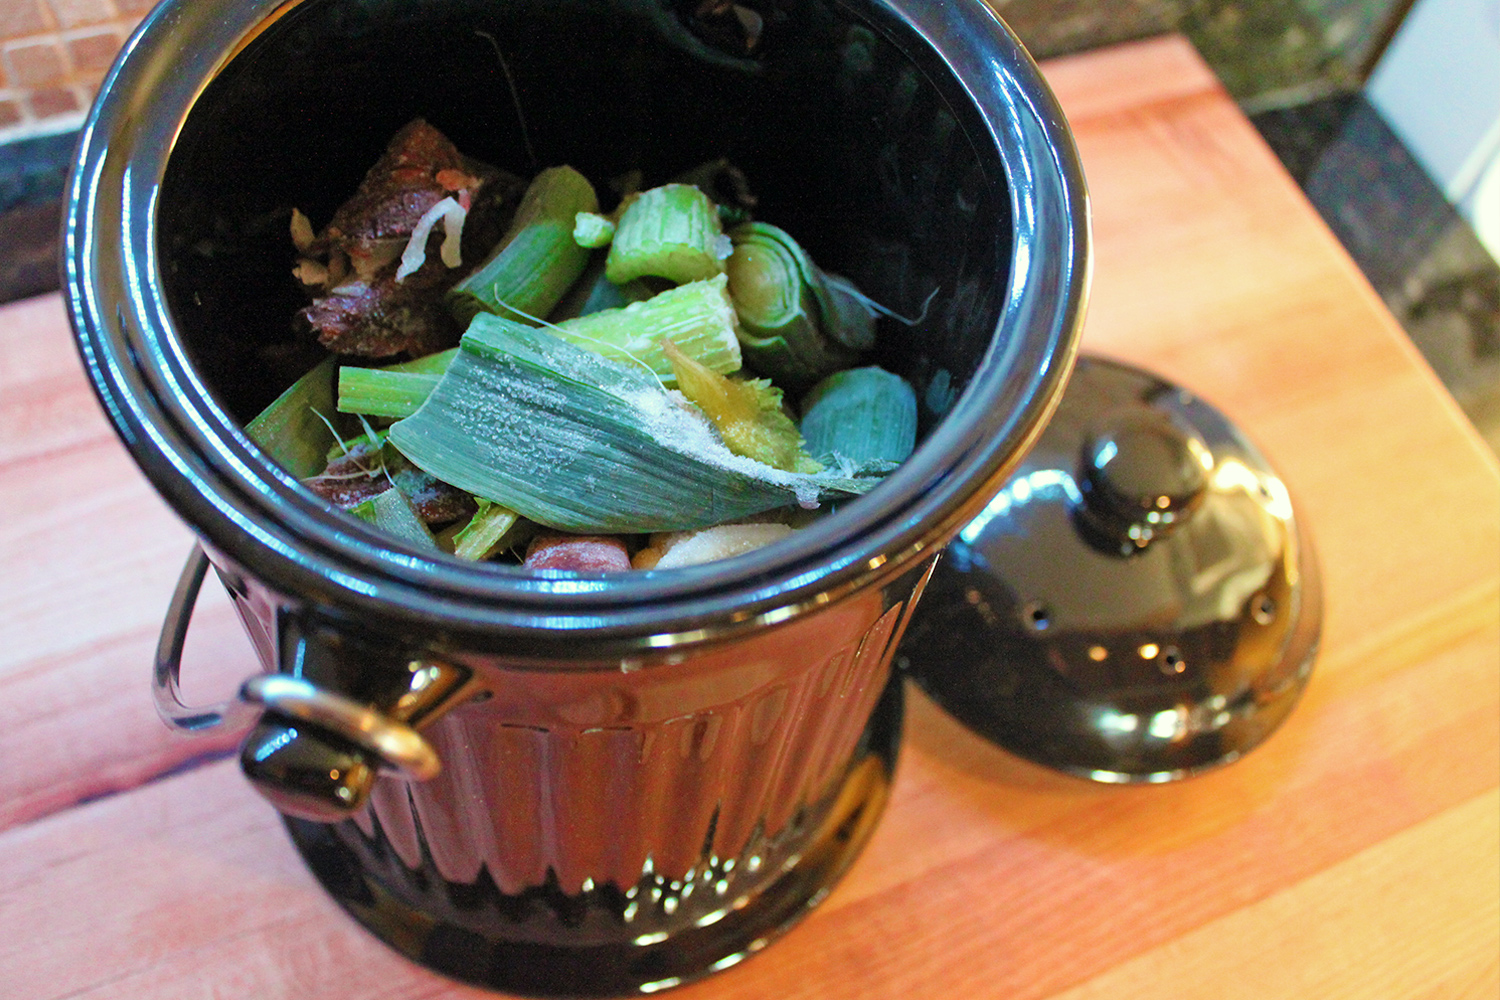 product review we try out ceramic countertop compost pail inhabitat green design innovation green building